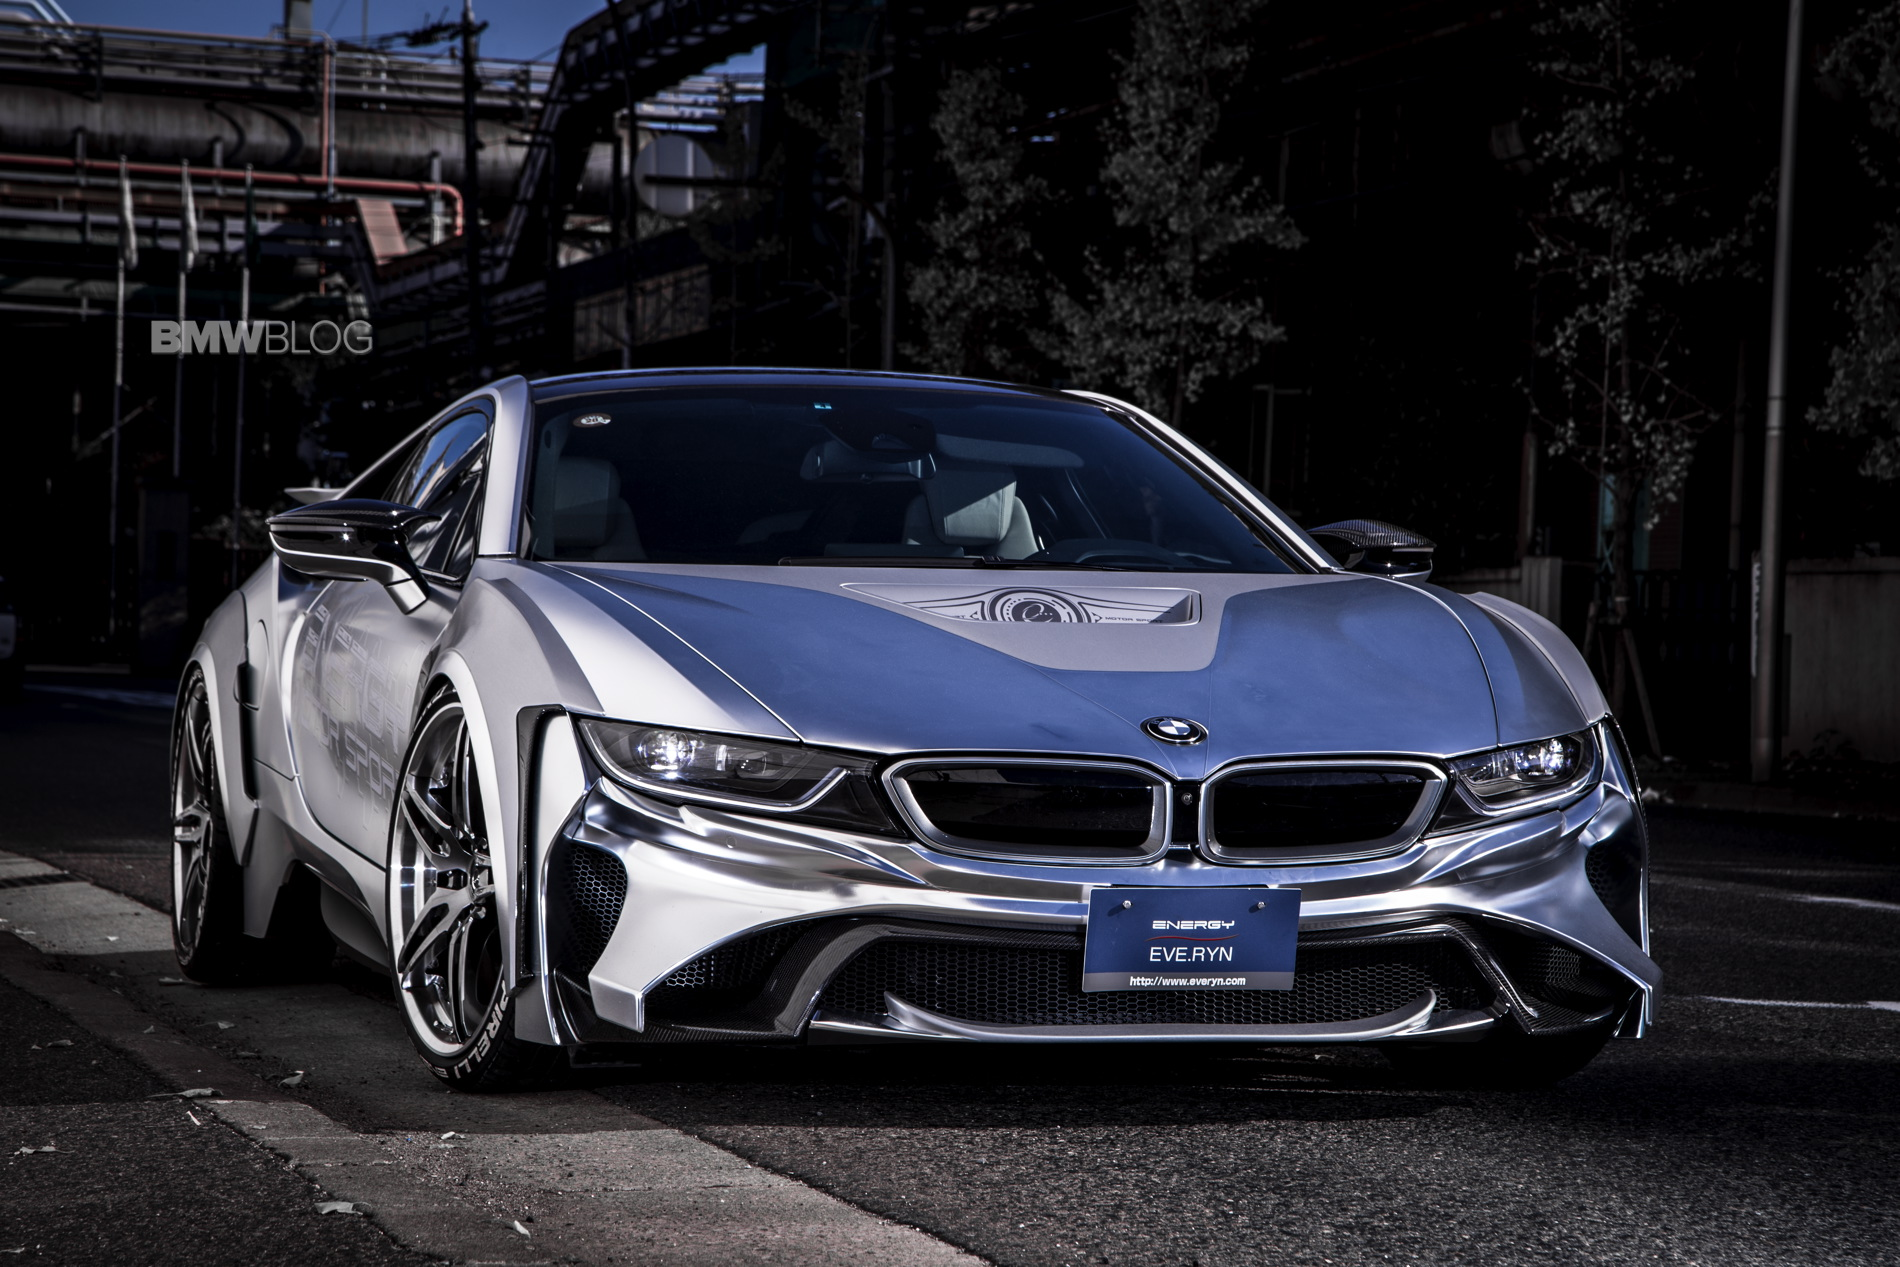 Bmw I8 Cyber Edition Gets An Evo Bodykit